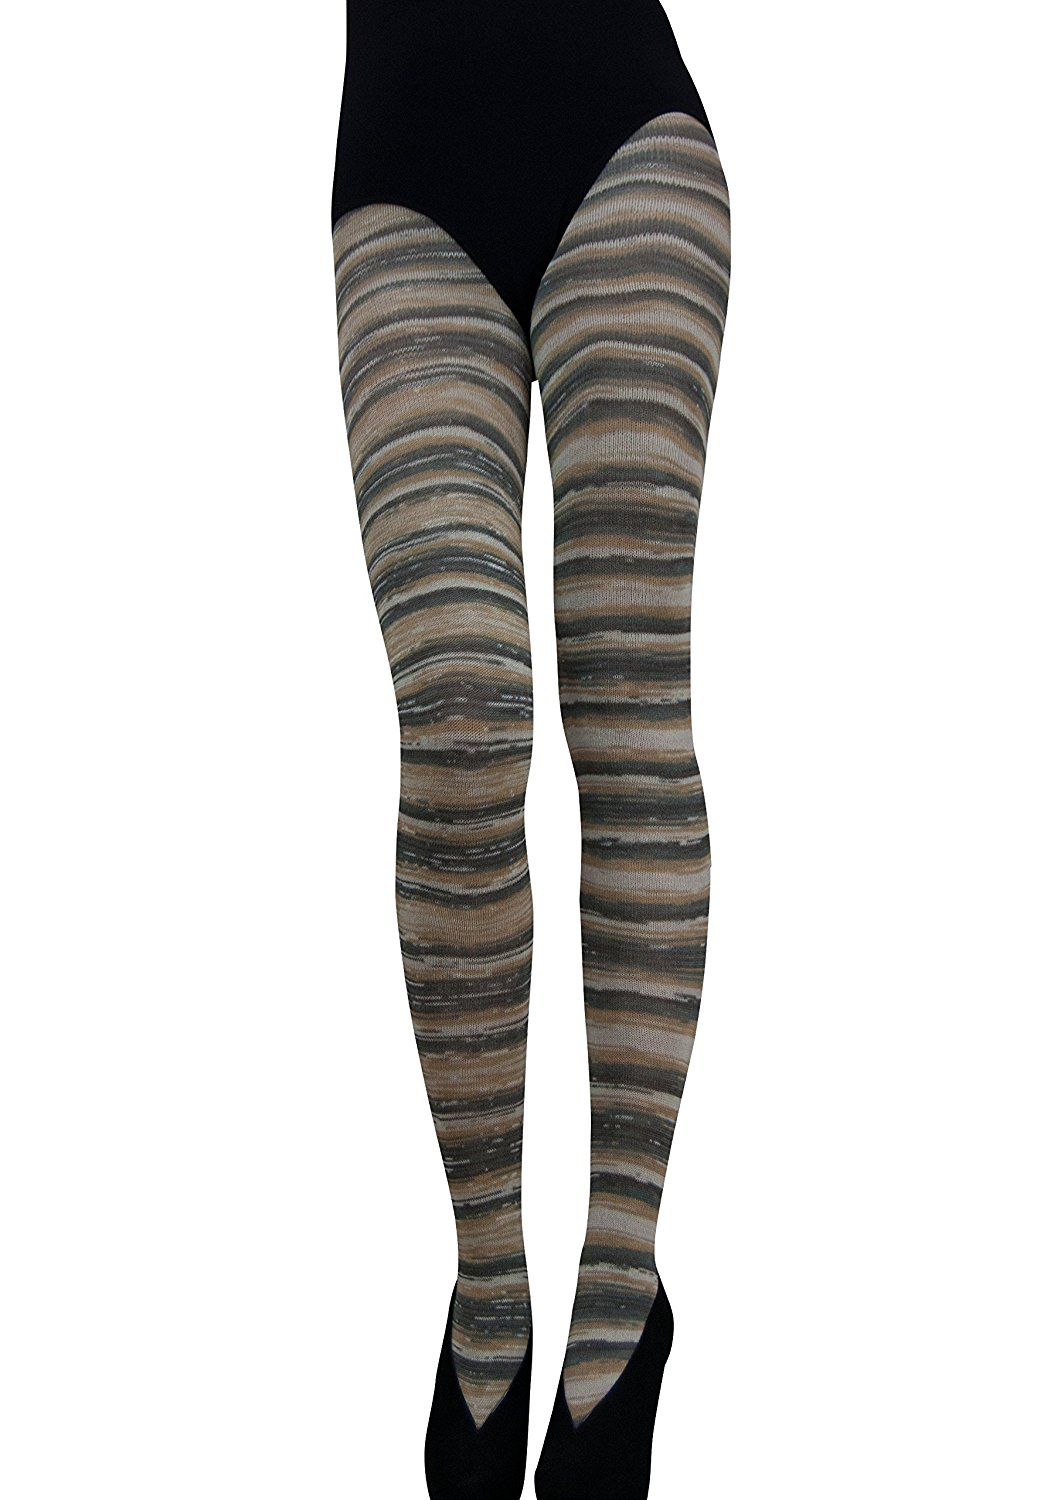 5eb497519f090d Get Quotations · Cecilia de Rafael Rhodesia Striped Tights - Hosiery Outlet